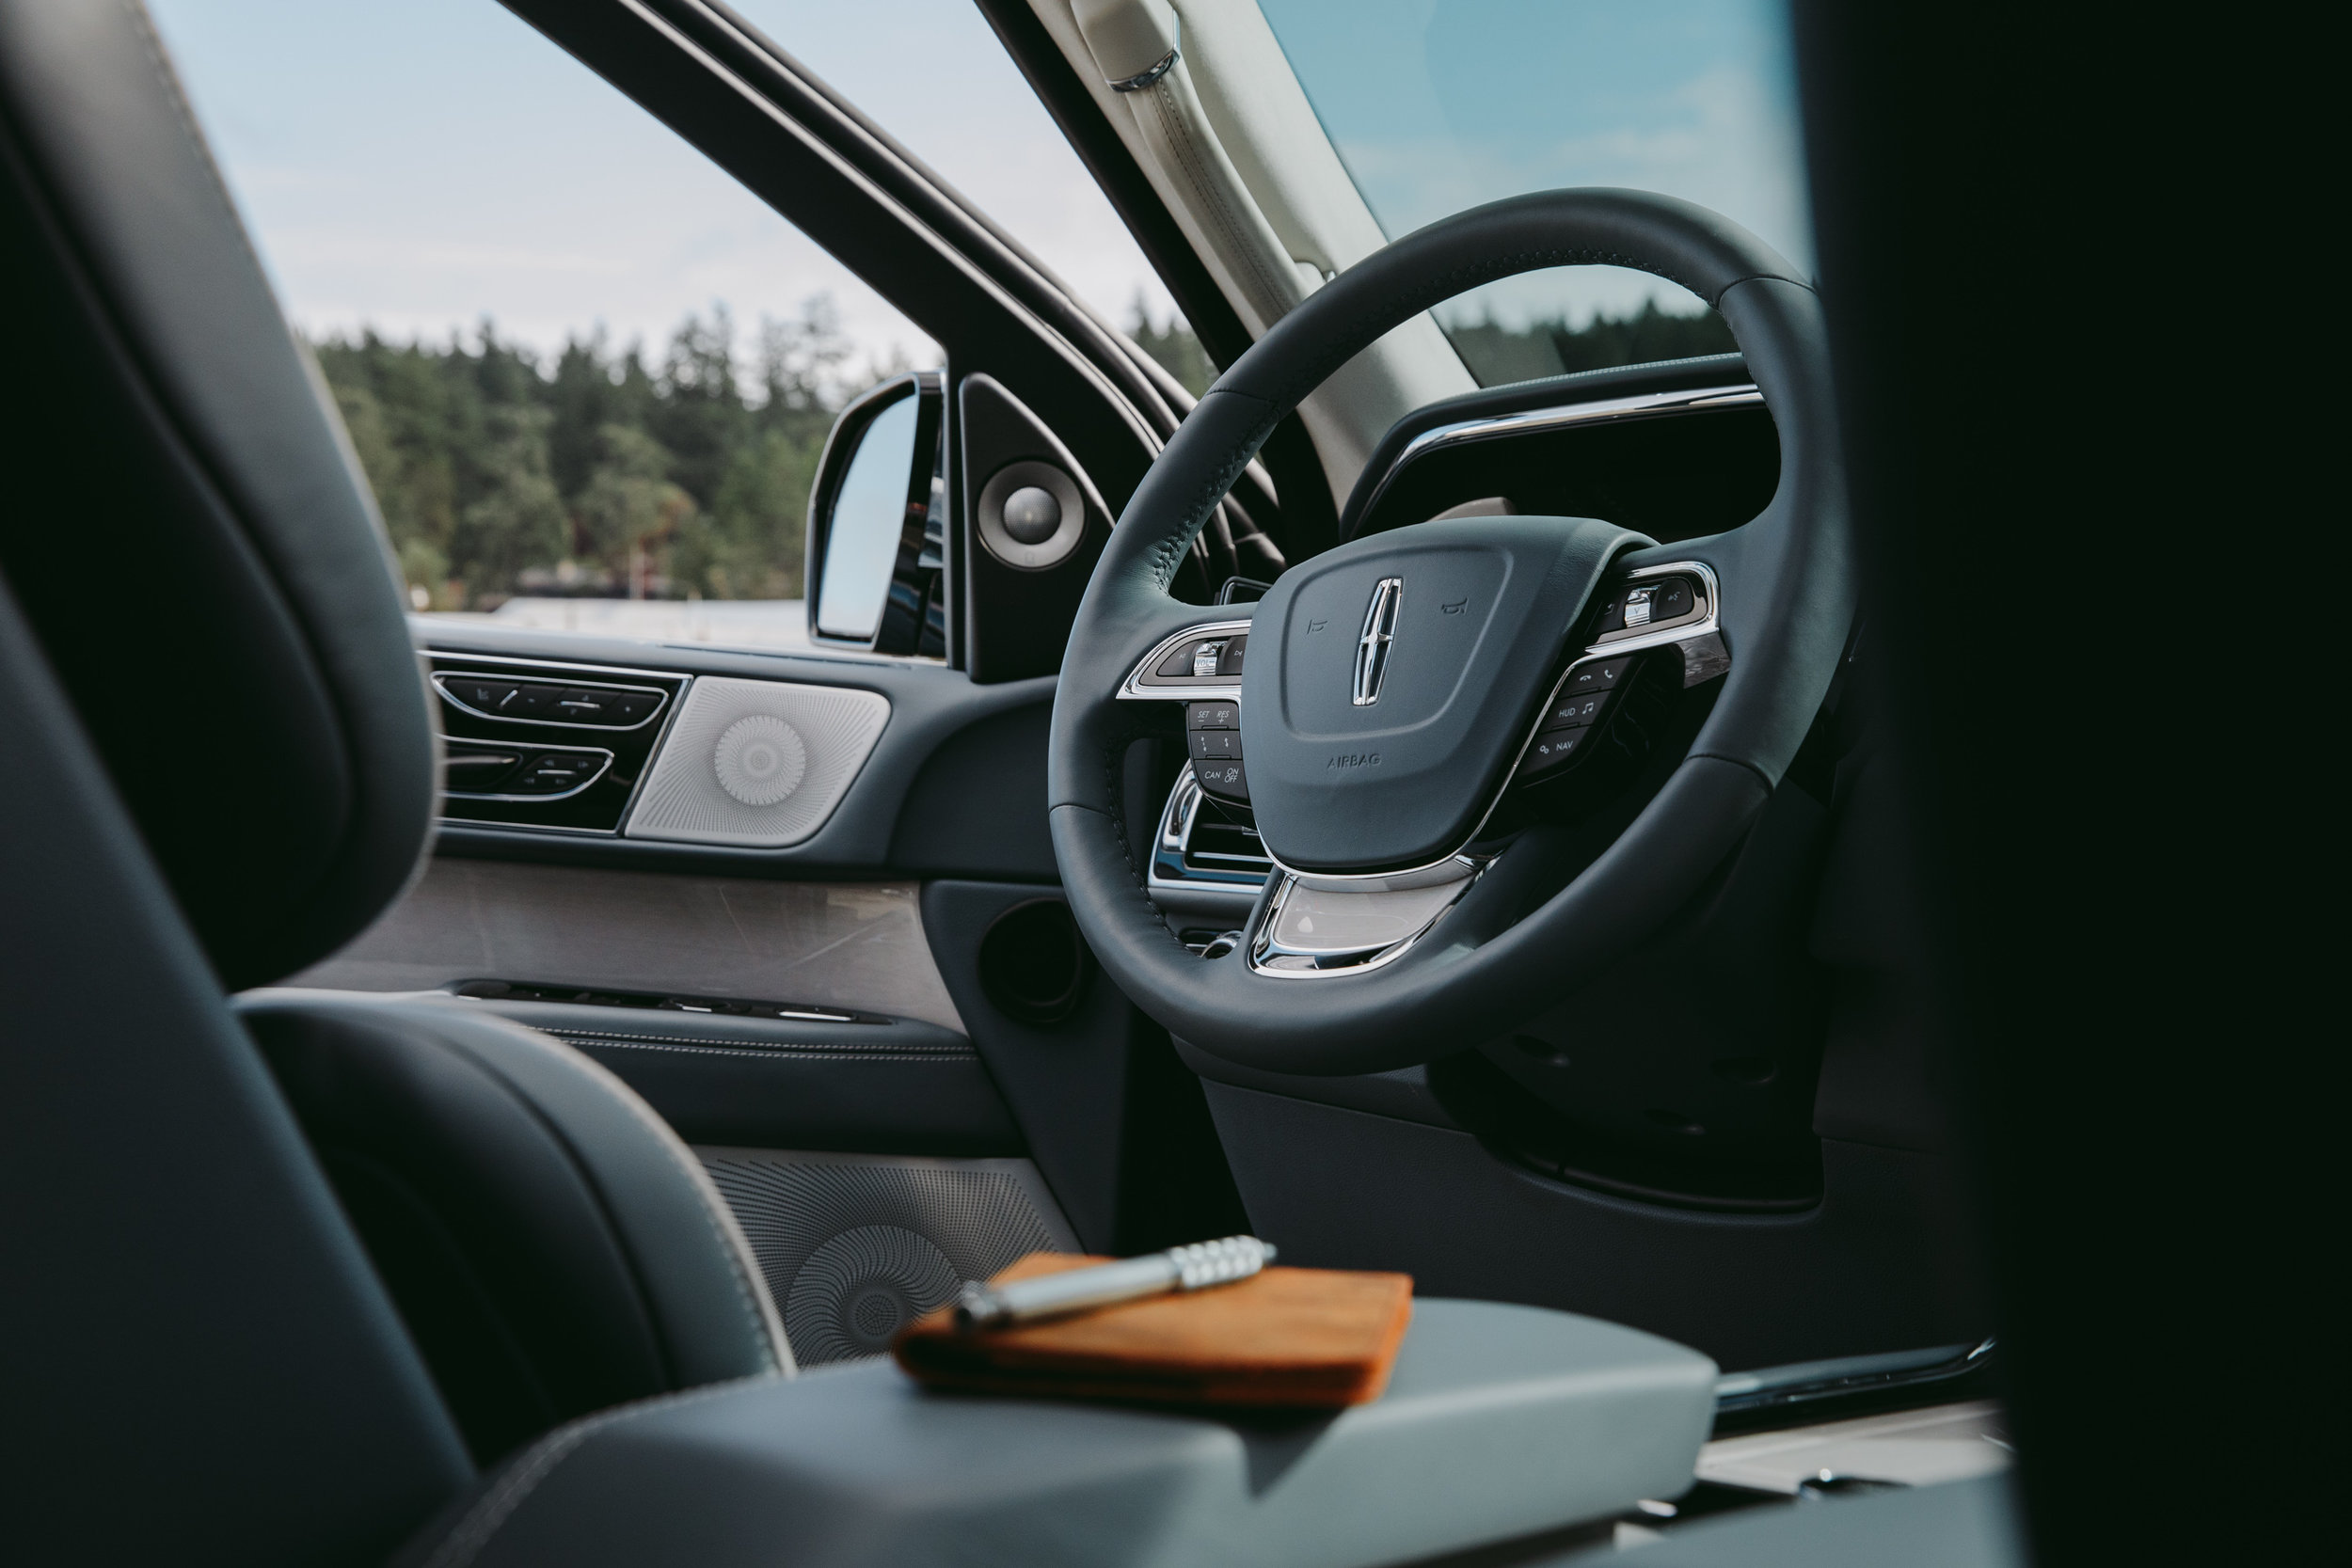 The Lincoln Motor Company • 2018 Navigator • Campaign To Be Launched Soon